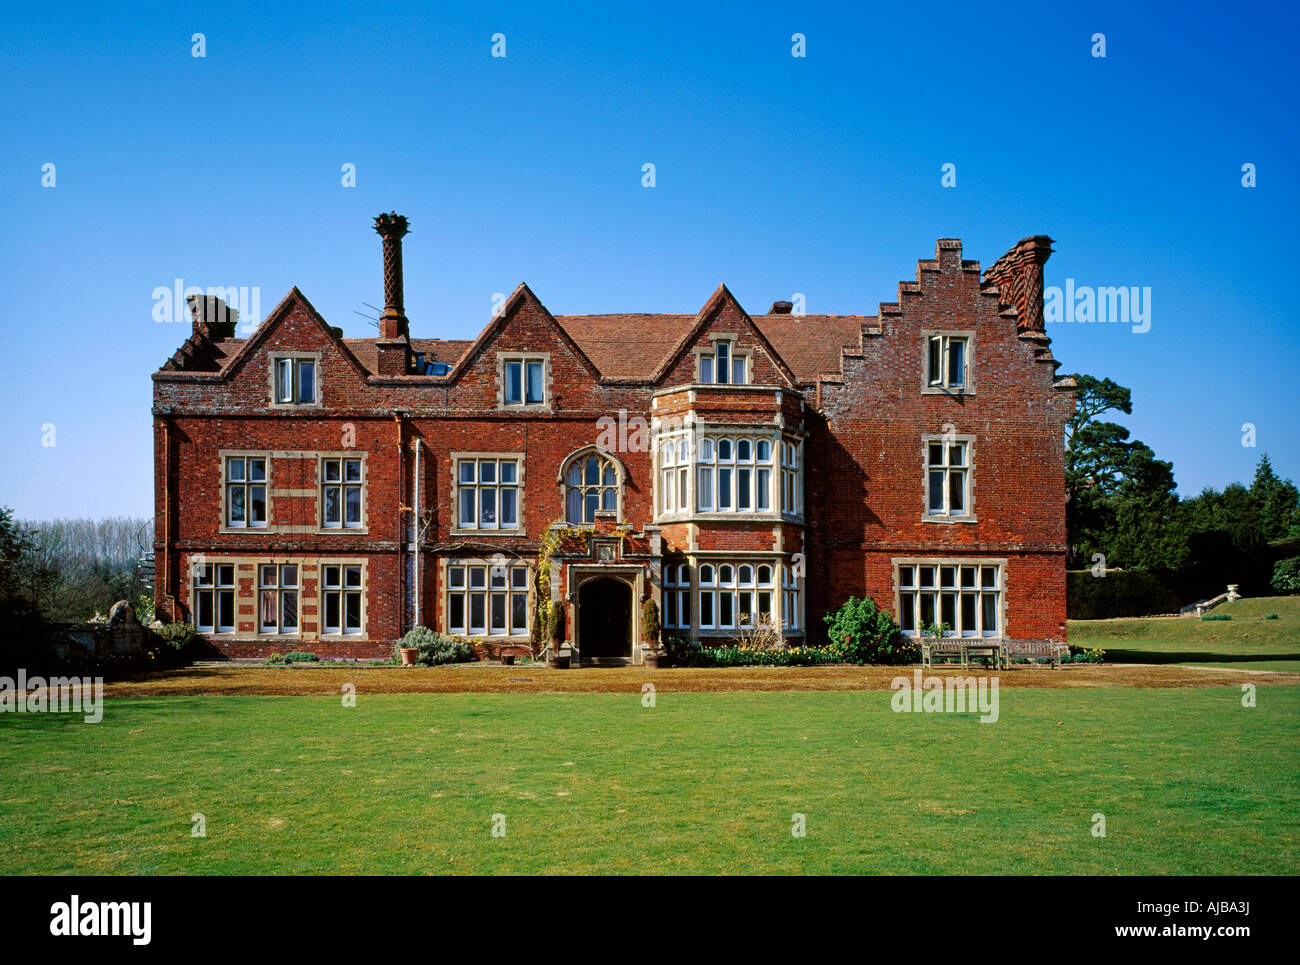 Roydon hall historic country house building kent england for Build country house